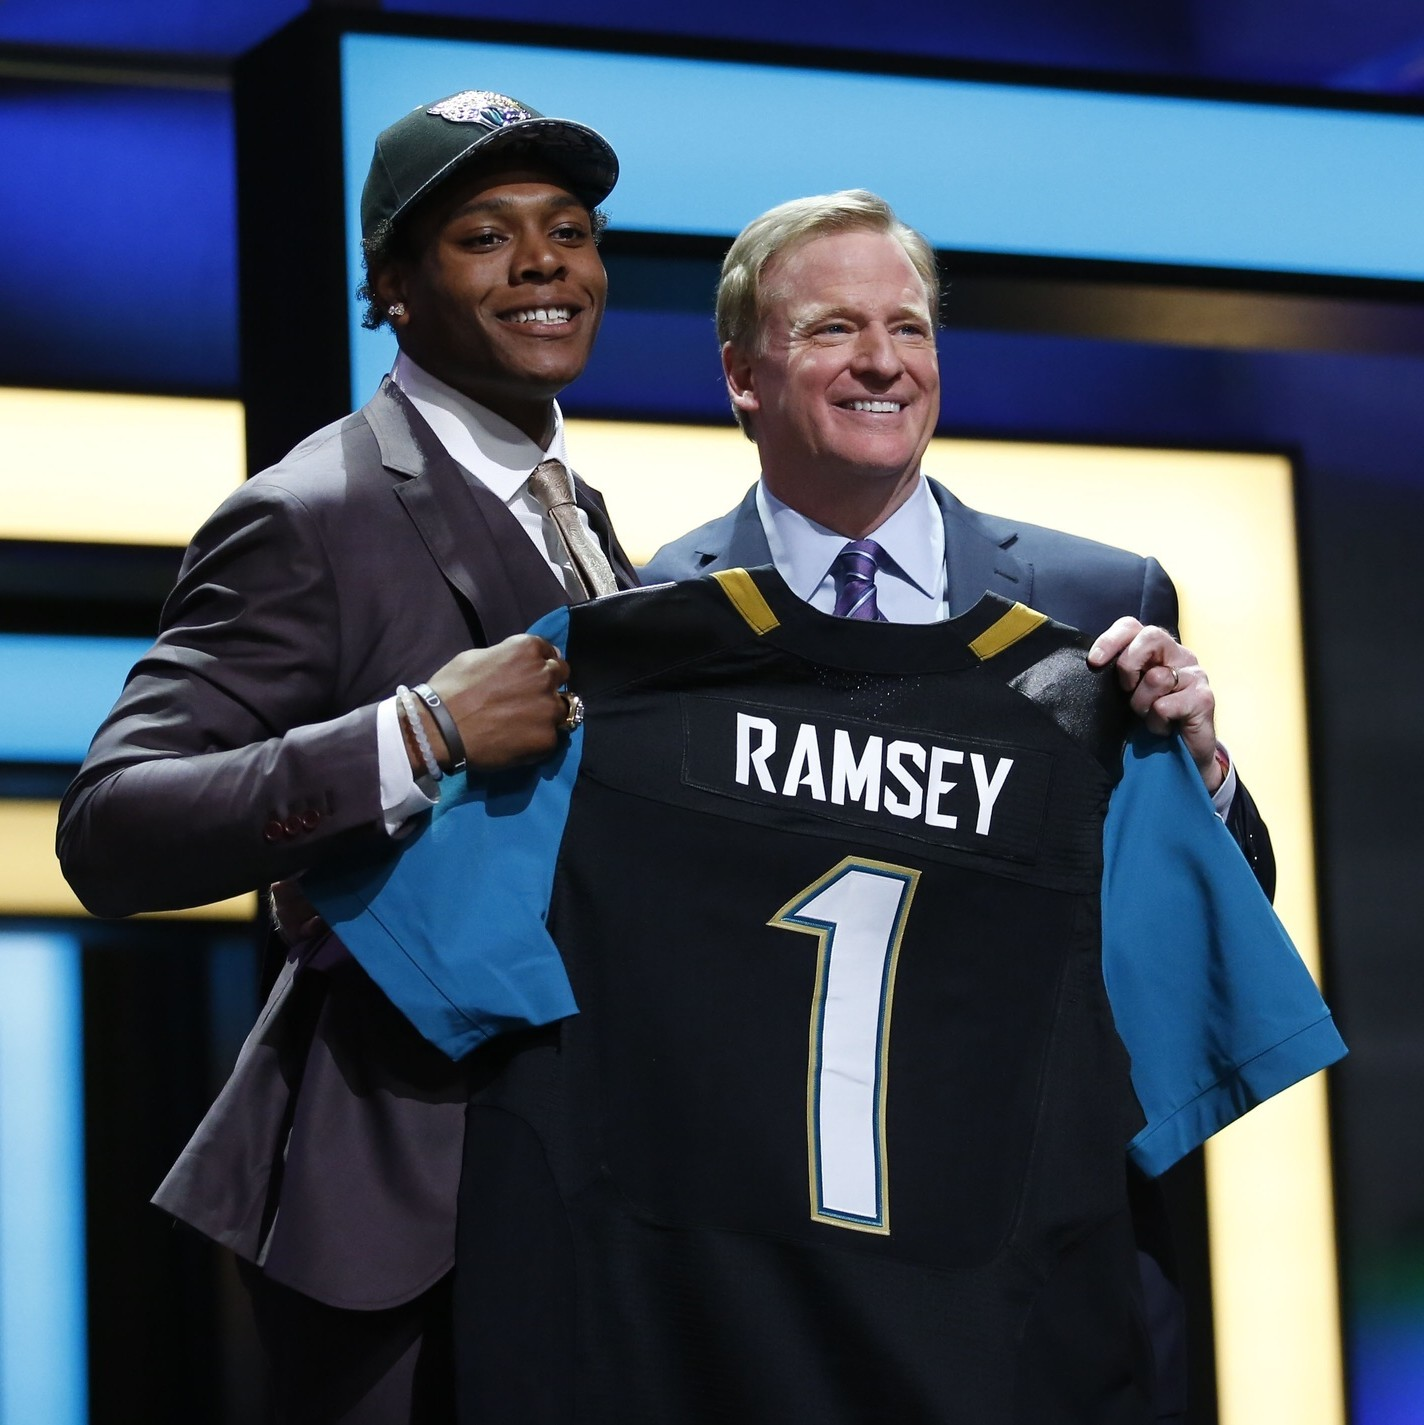 The-jacksonville-jaguars-won-the-2016-nfl-draft-but-does-that-mean-anything-1462217770.jpg?crop=0